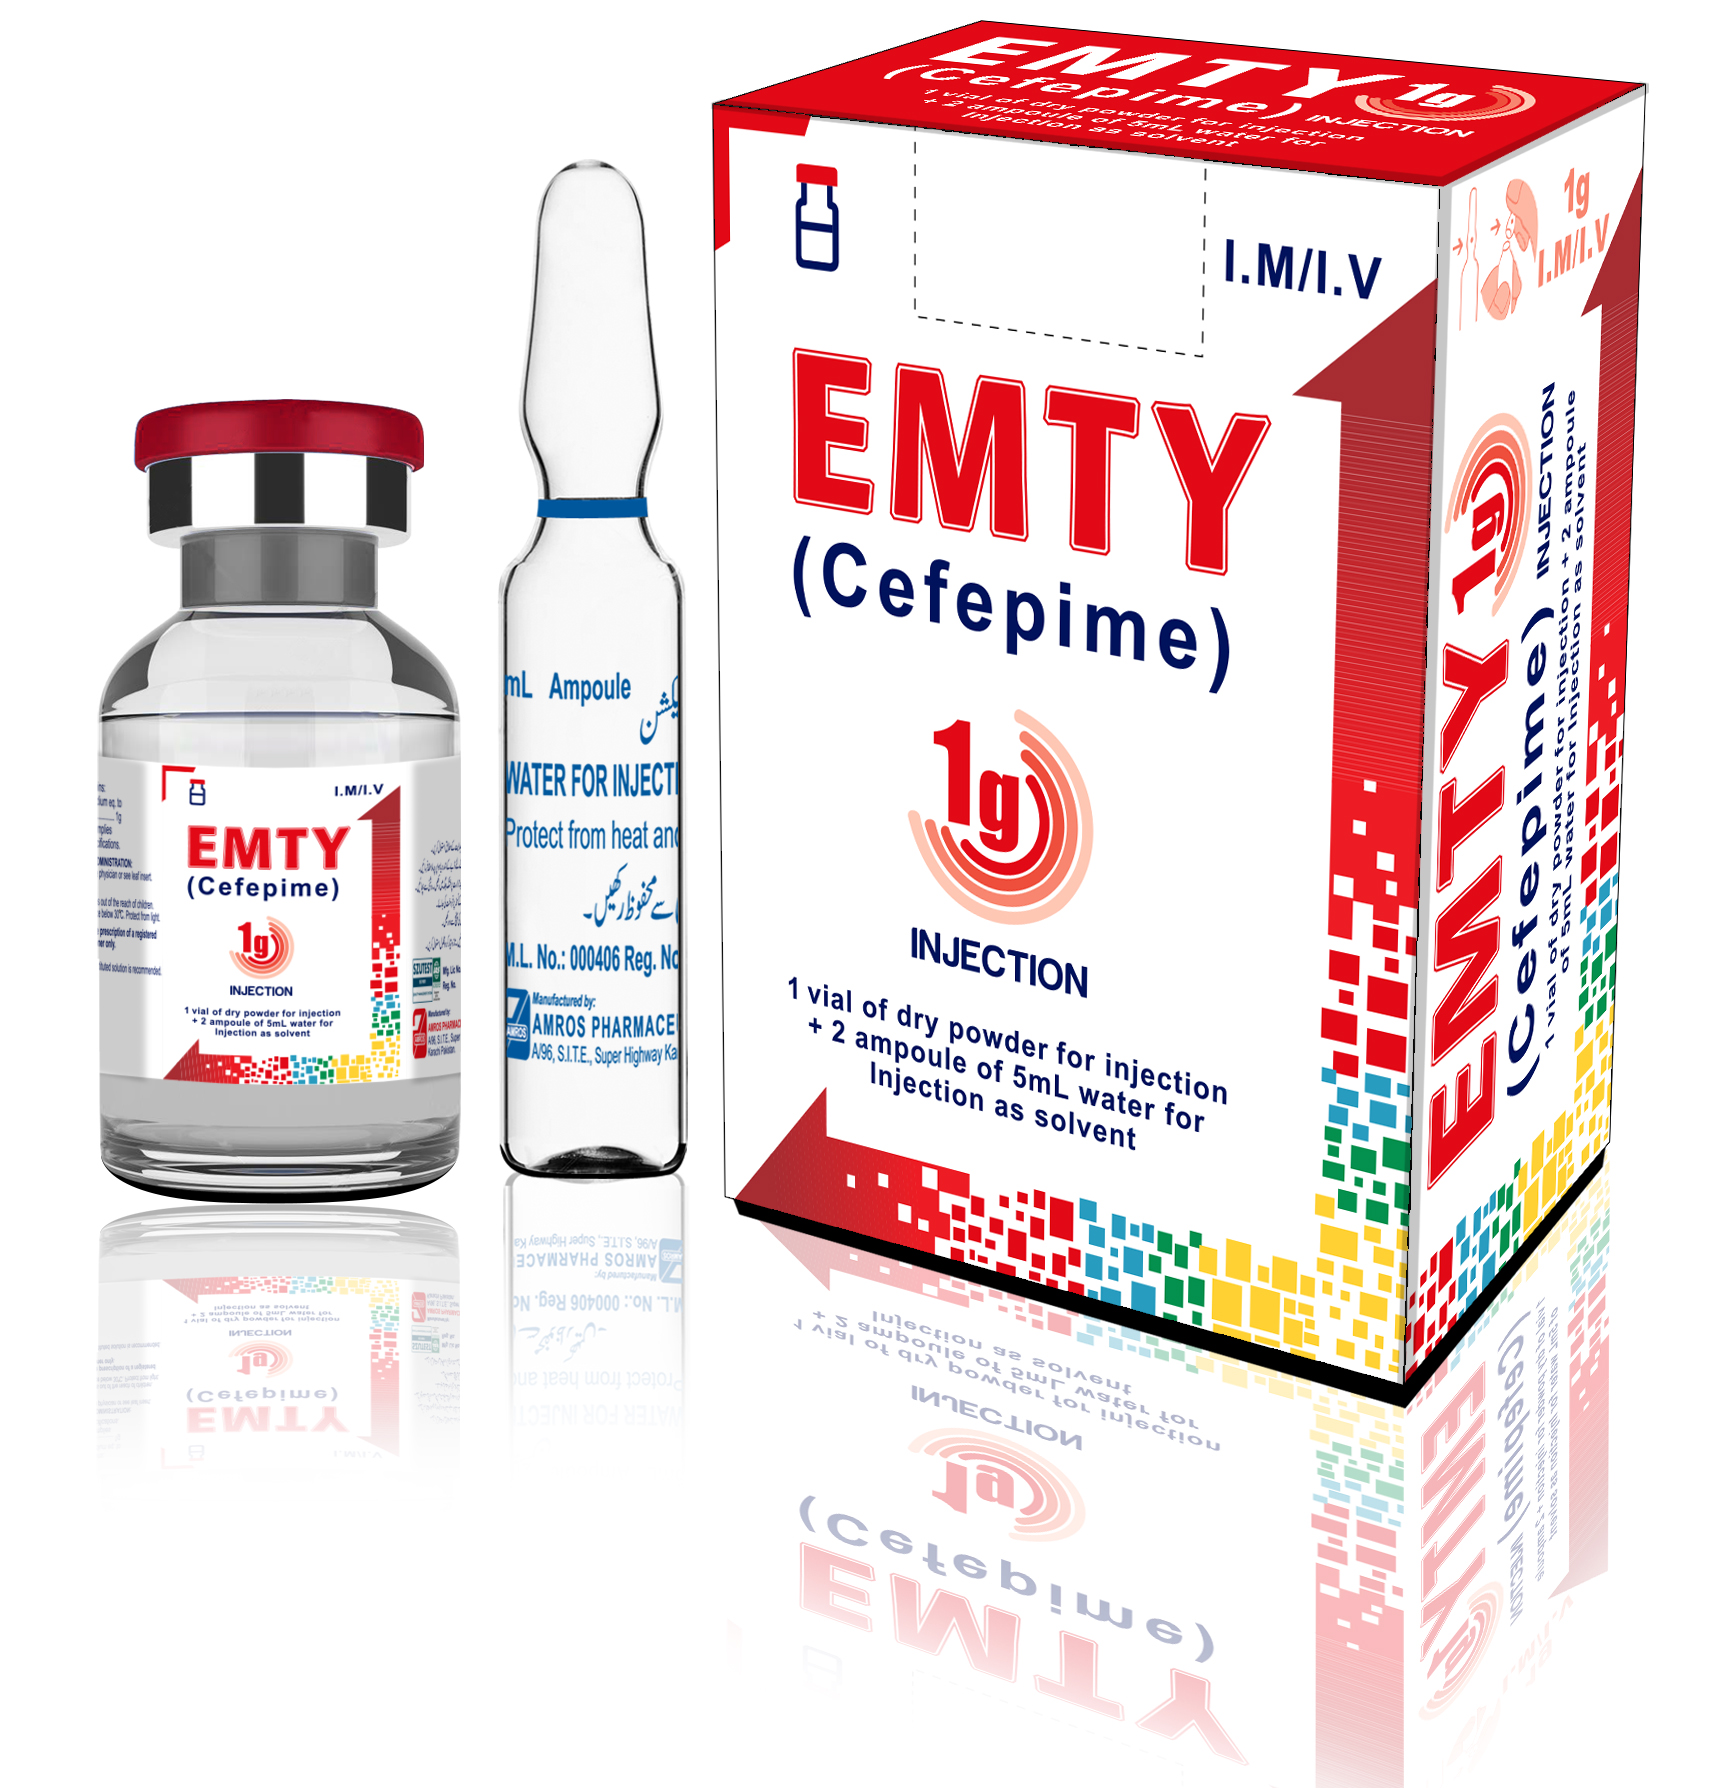 Emty 1g Injection